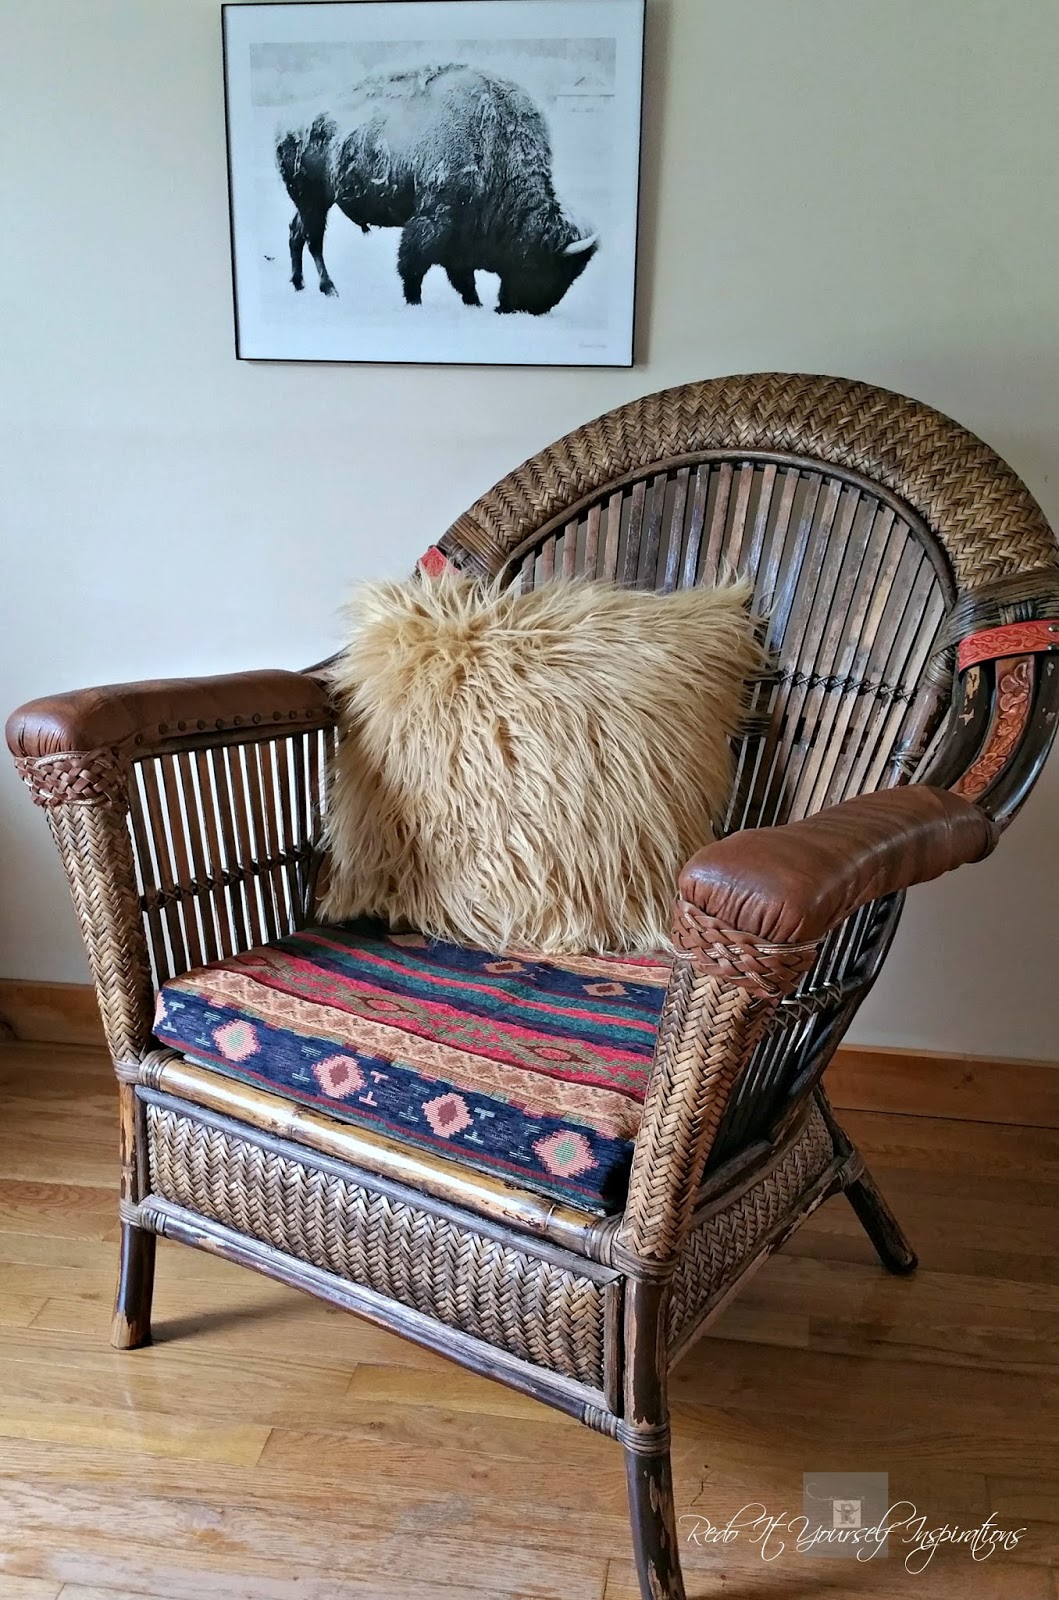 Pier 1 Wicker And Rattan Chair Makeover Redo It Yourself Inspirations Pier 1 Wicker And